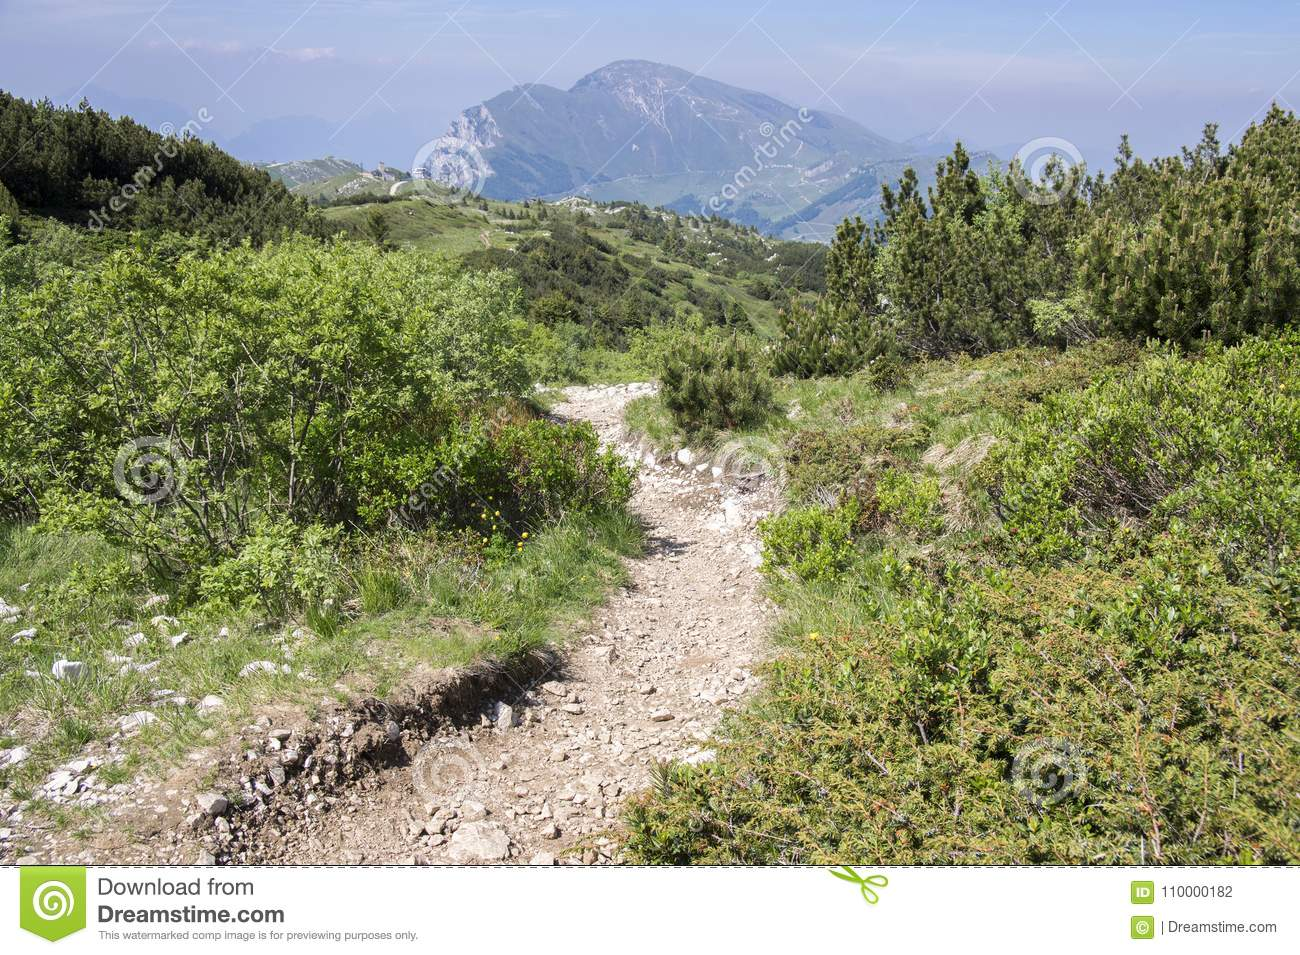 Touristic trail Alta Via del Monte Baldo, ridge way in Garda Mountains